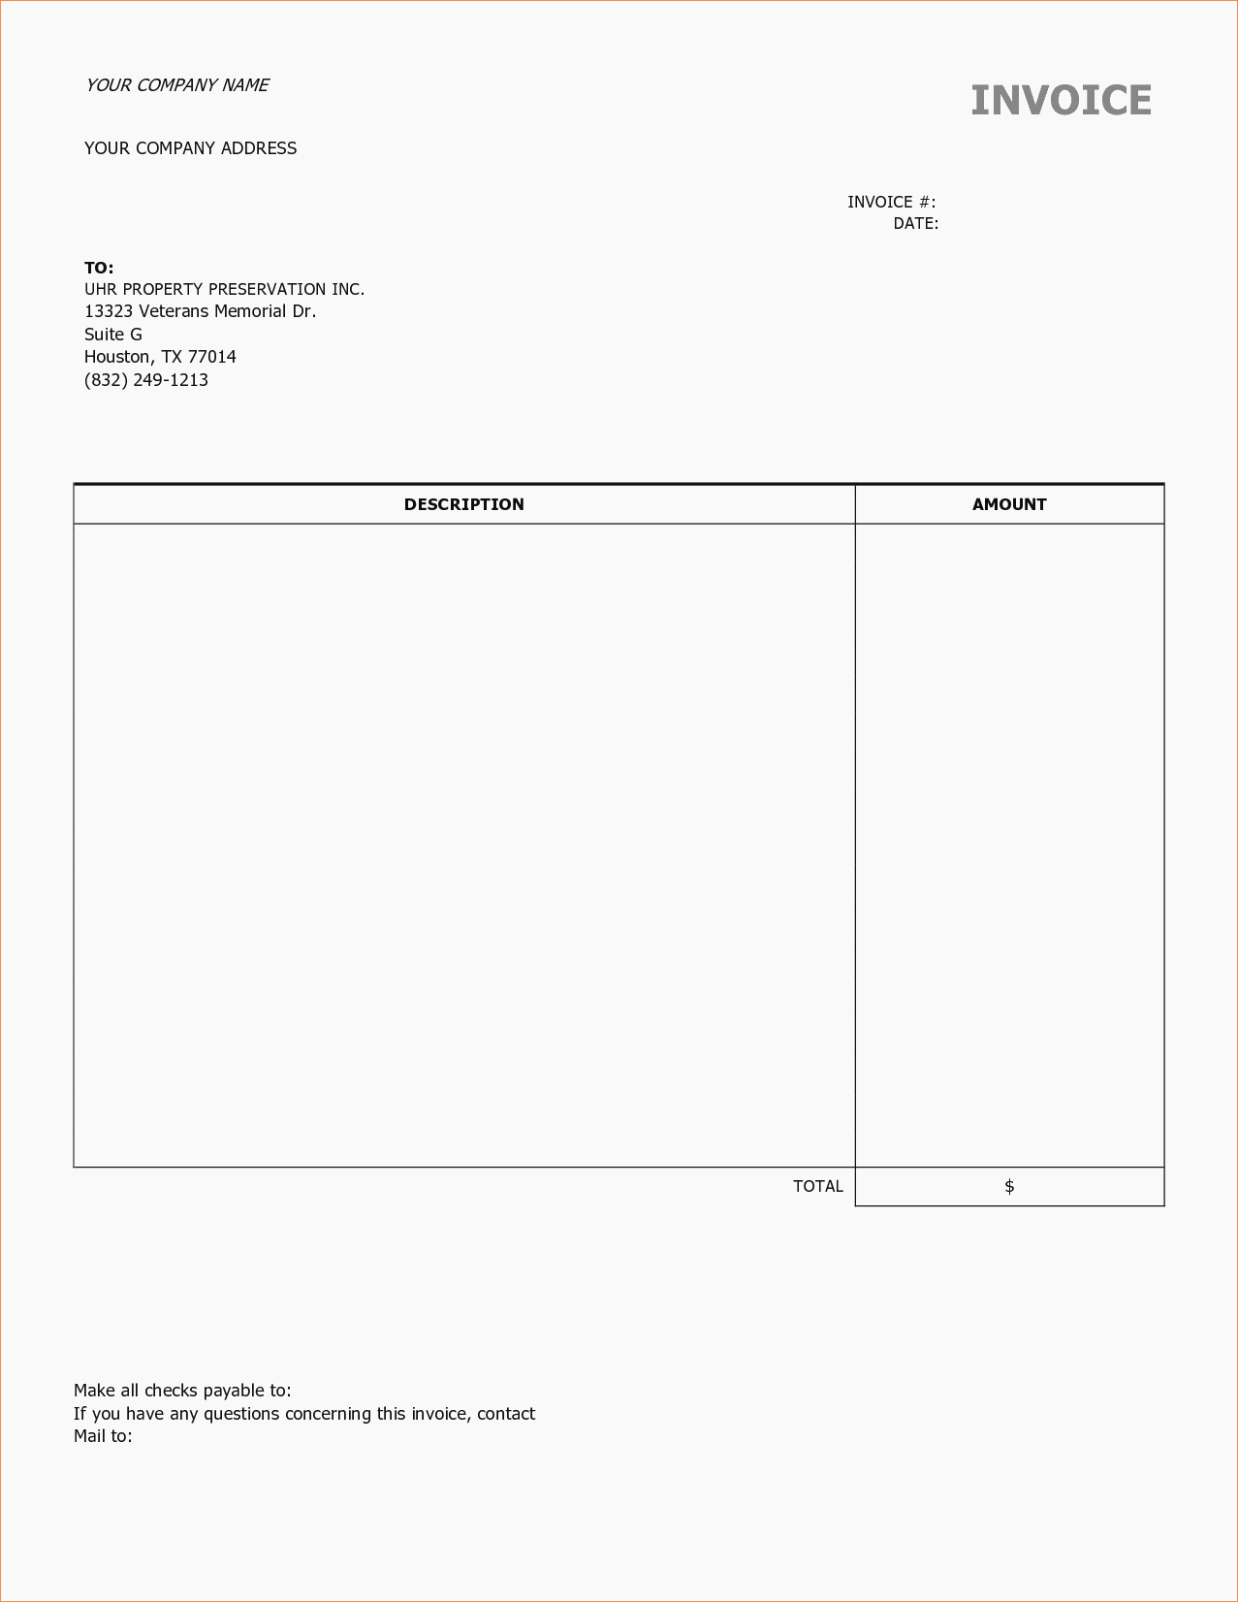 Labor Invoice Template Word New the Five Mon